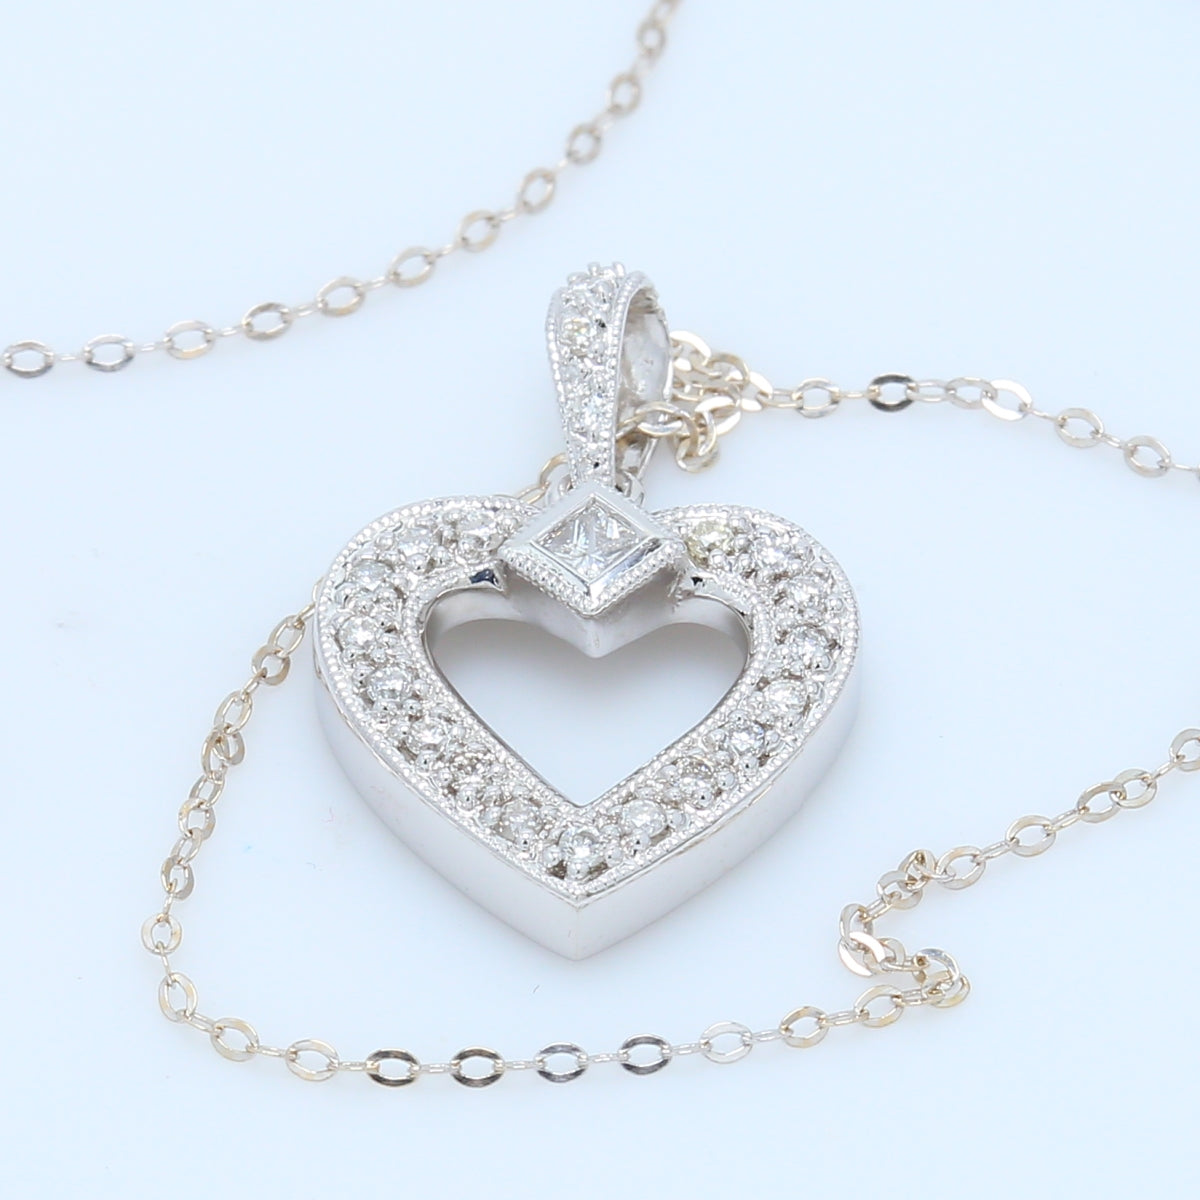 Vintage Inspired Diamond Heart Necklace